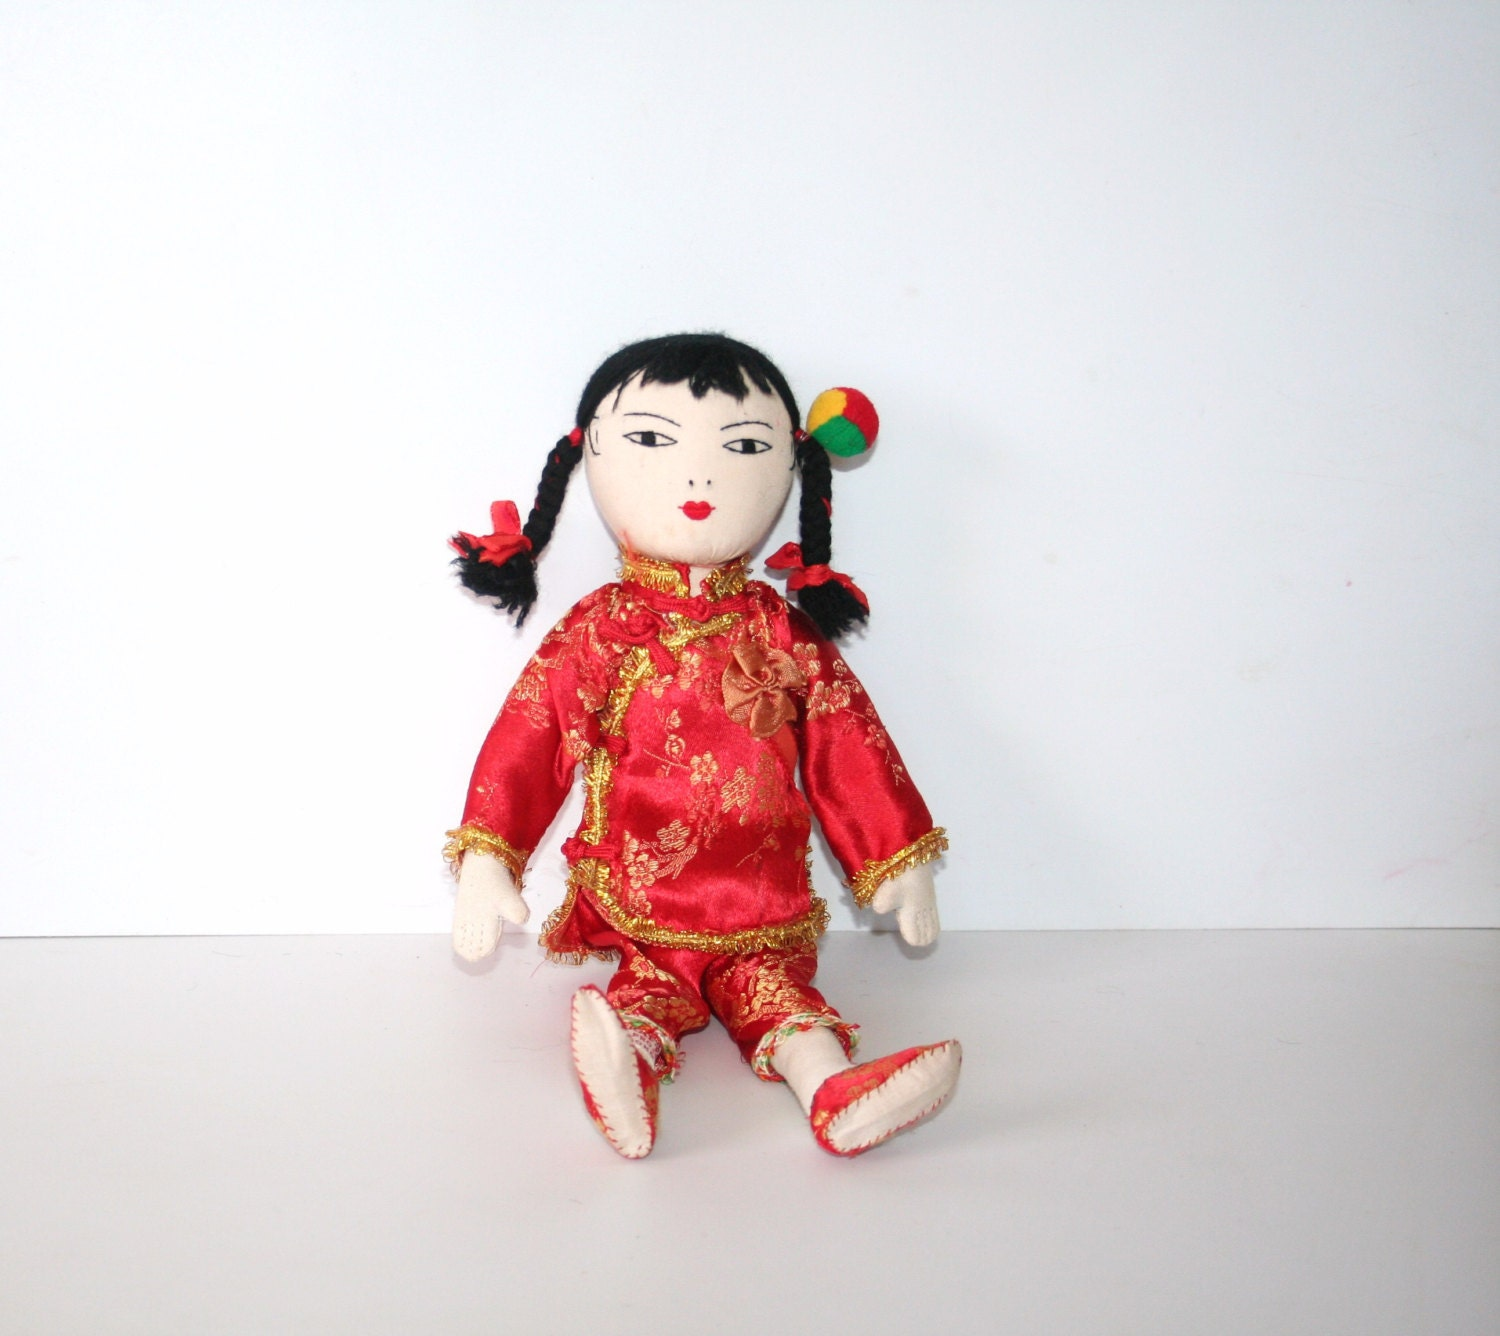 Classic Old Vintage Cloth Asian Doll  sewn on features yarn hairtraditional dress MEMsArtShop.